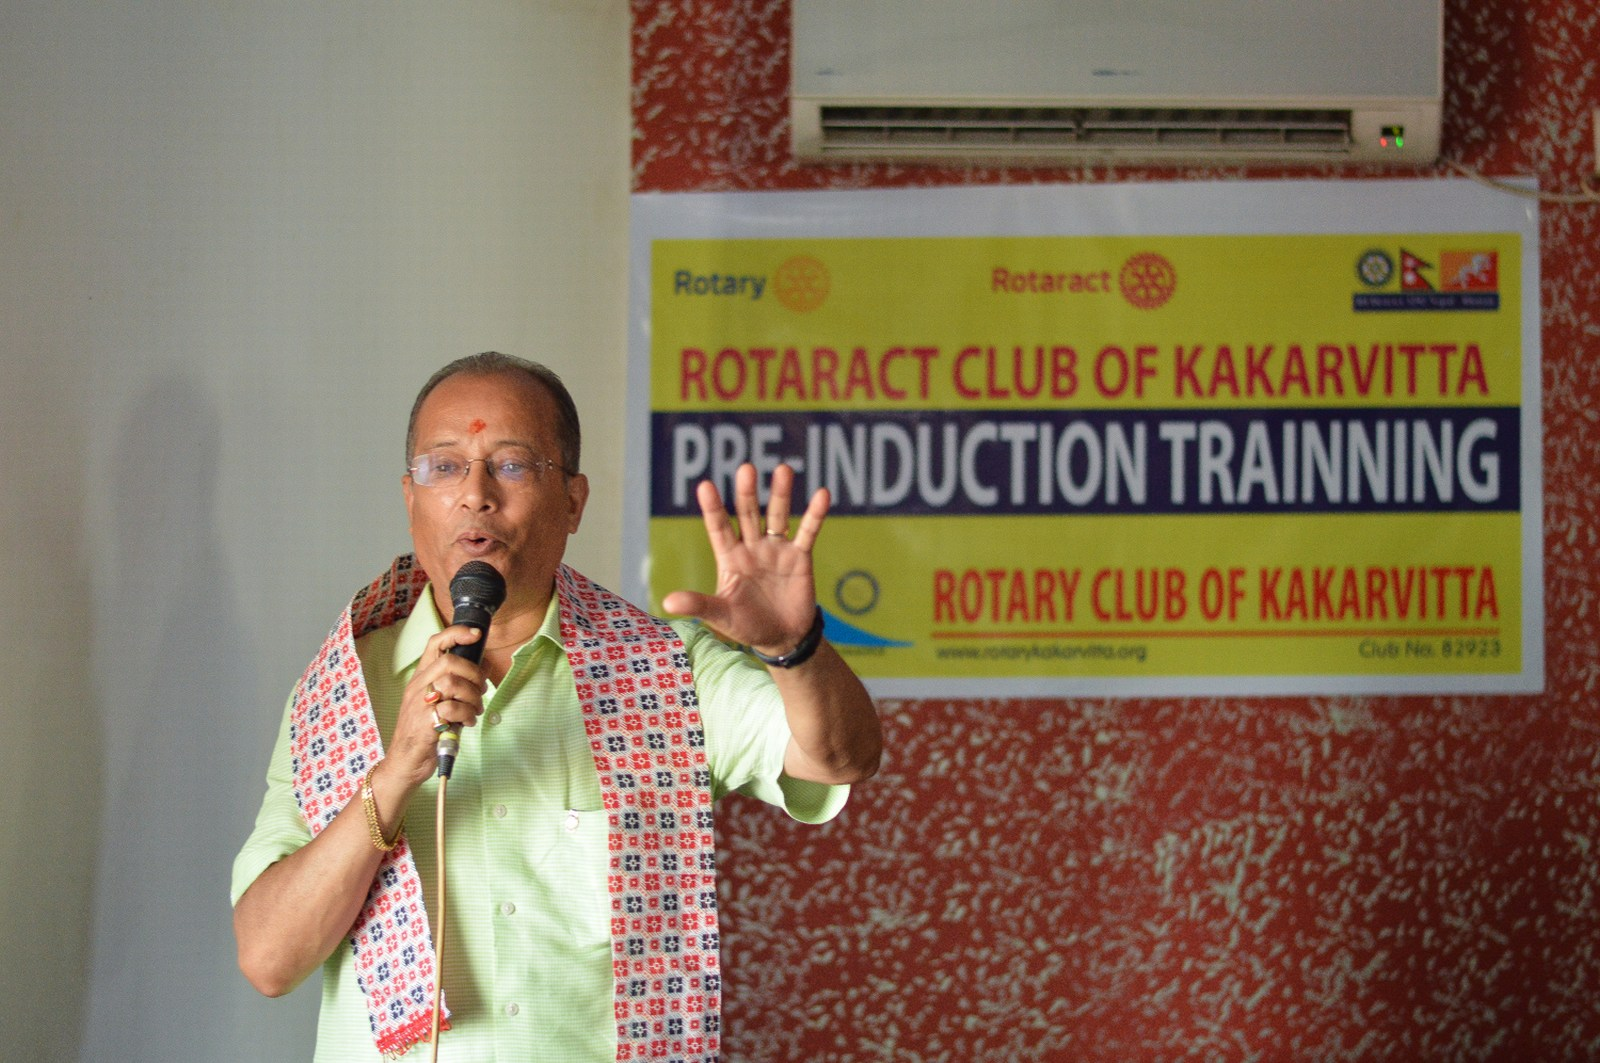 Pre-Induction-Training-of-Rotaract-Club-of-Kakarvitta-Rotary-Club-of-Kakarvitta-8